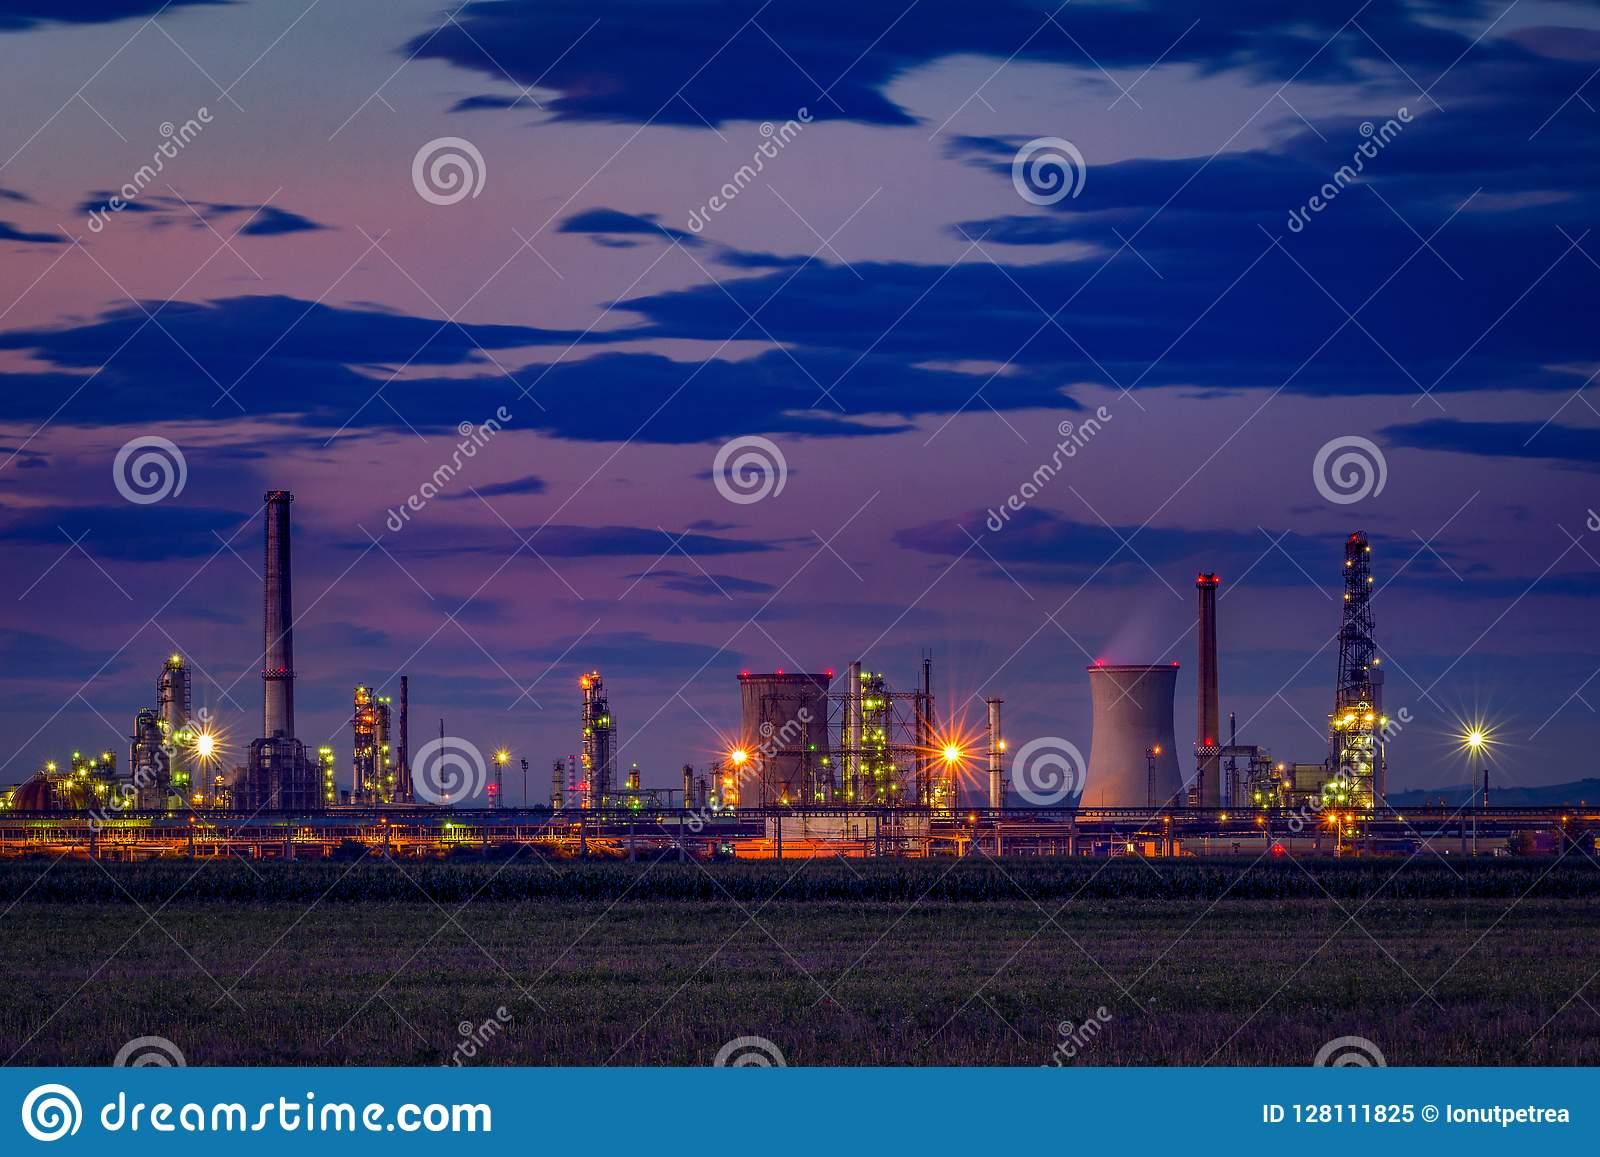 Petrol oil refinery located near a cultivated field at dusk